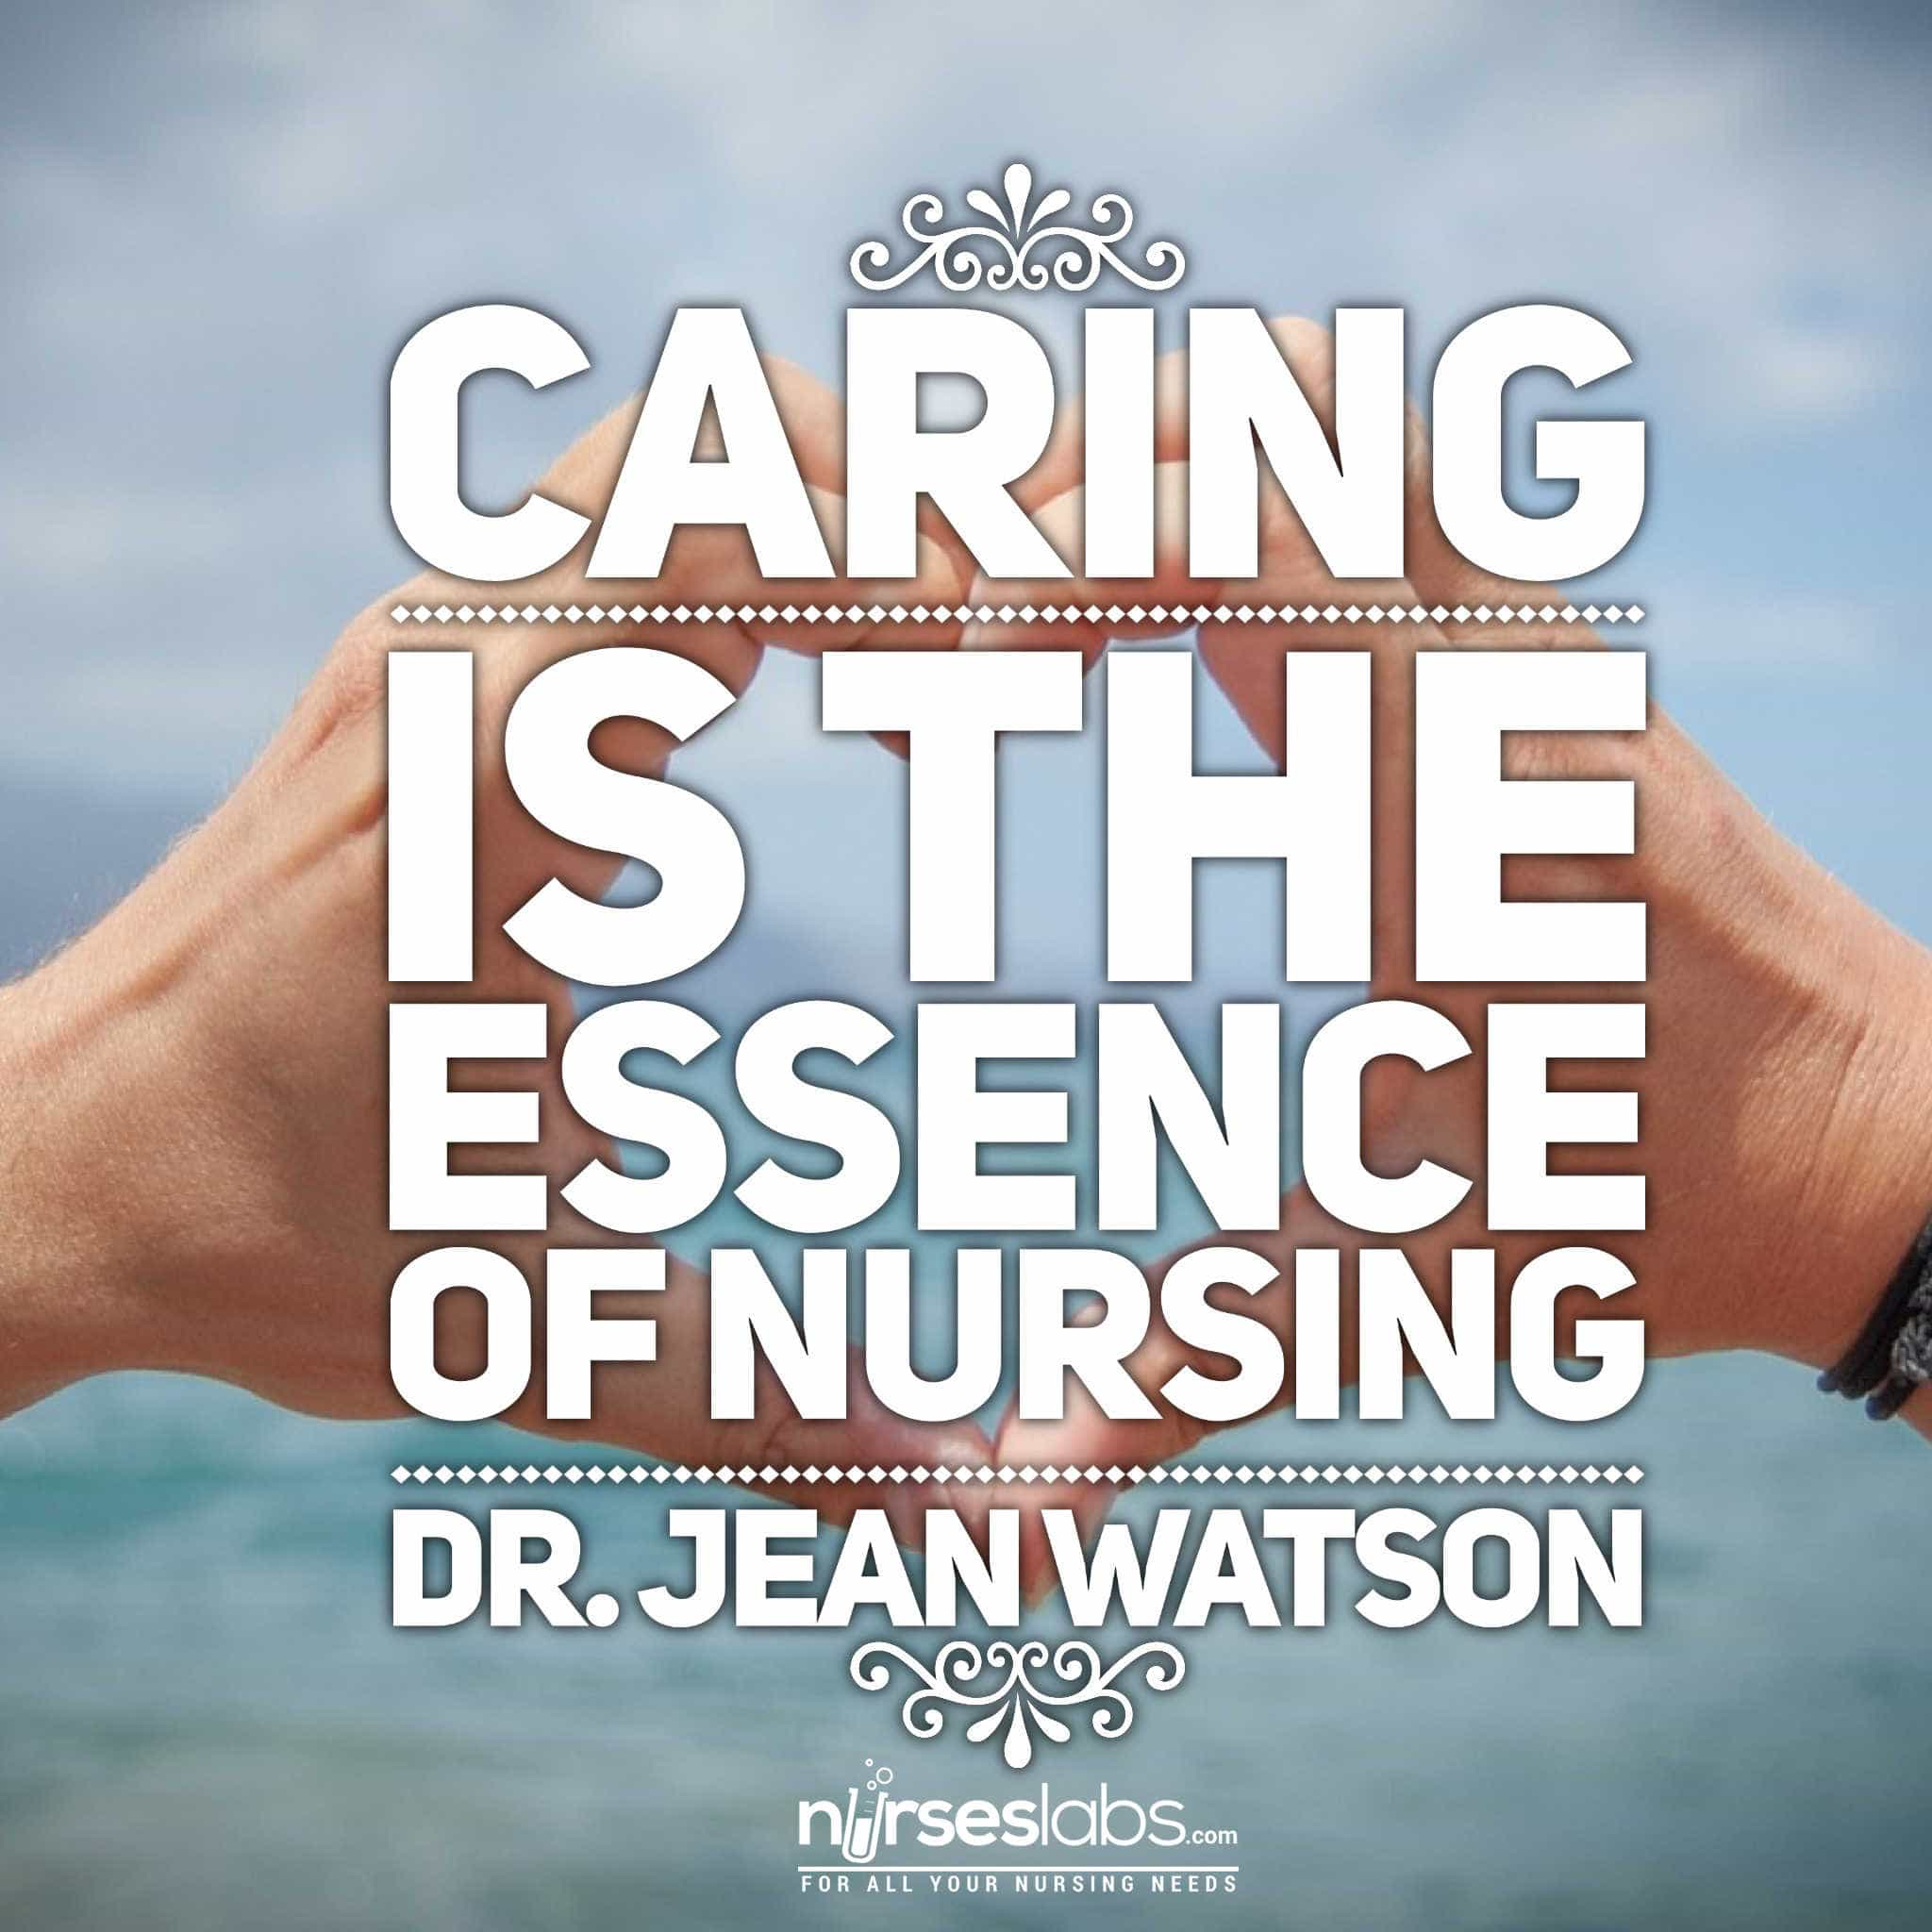 Caring is the essence of nursing. -Dr. Jean Watson